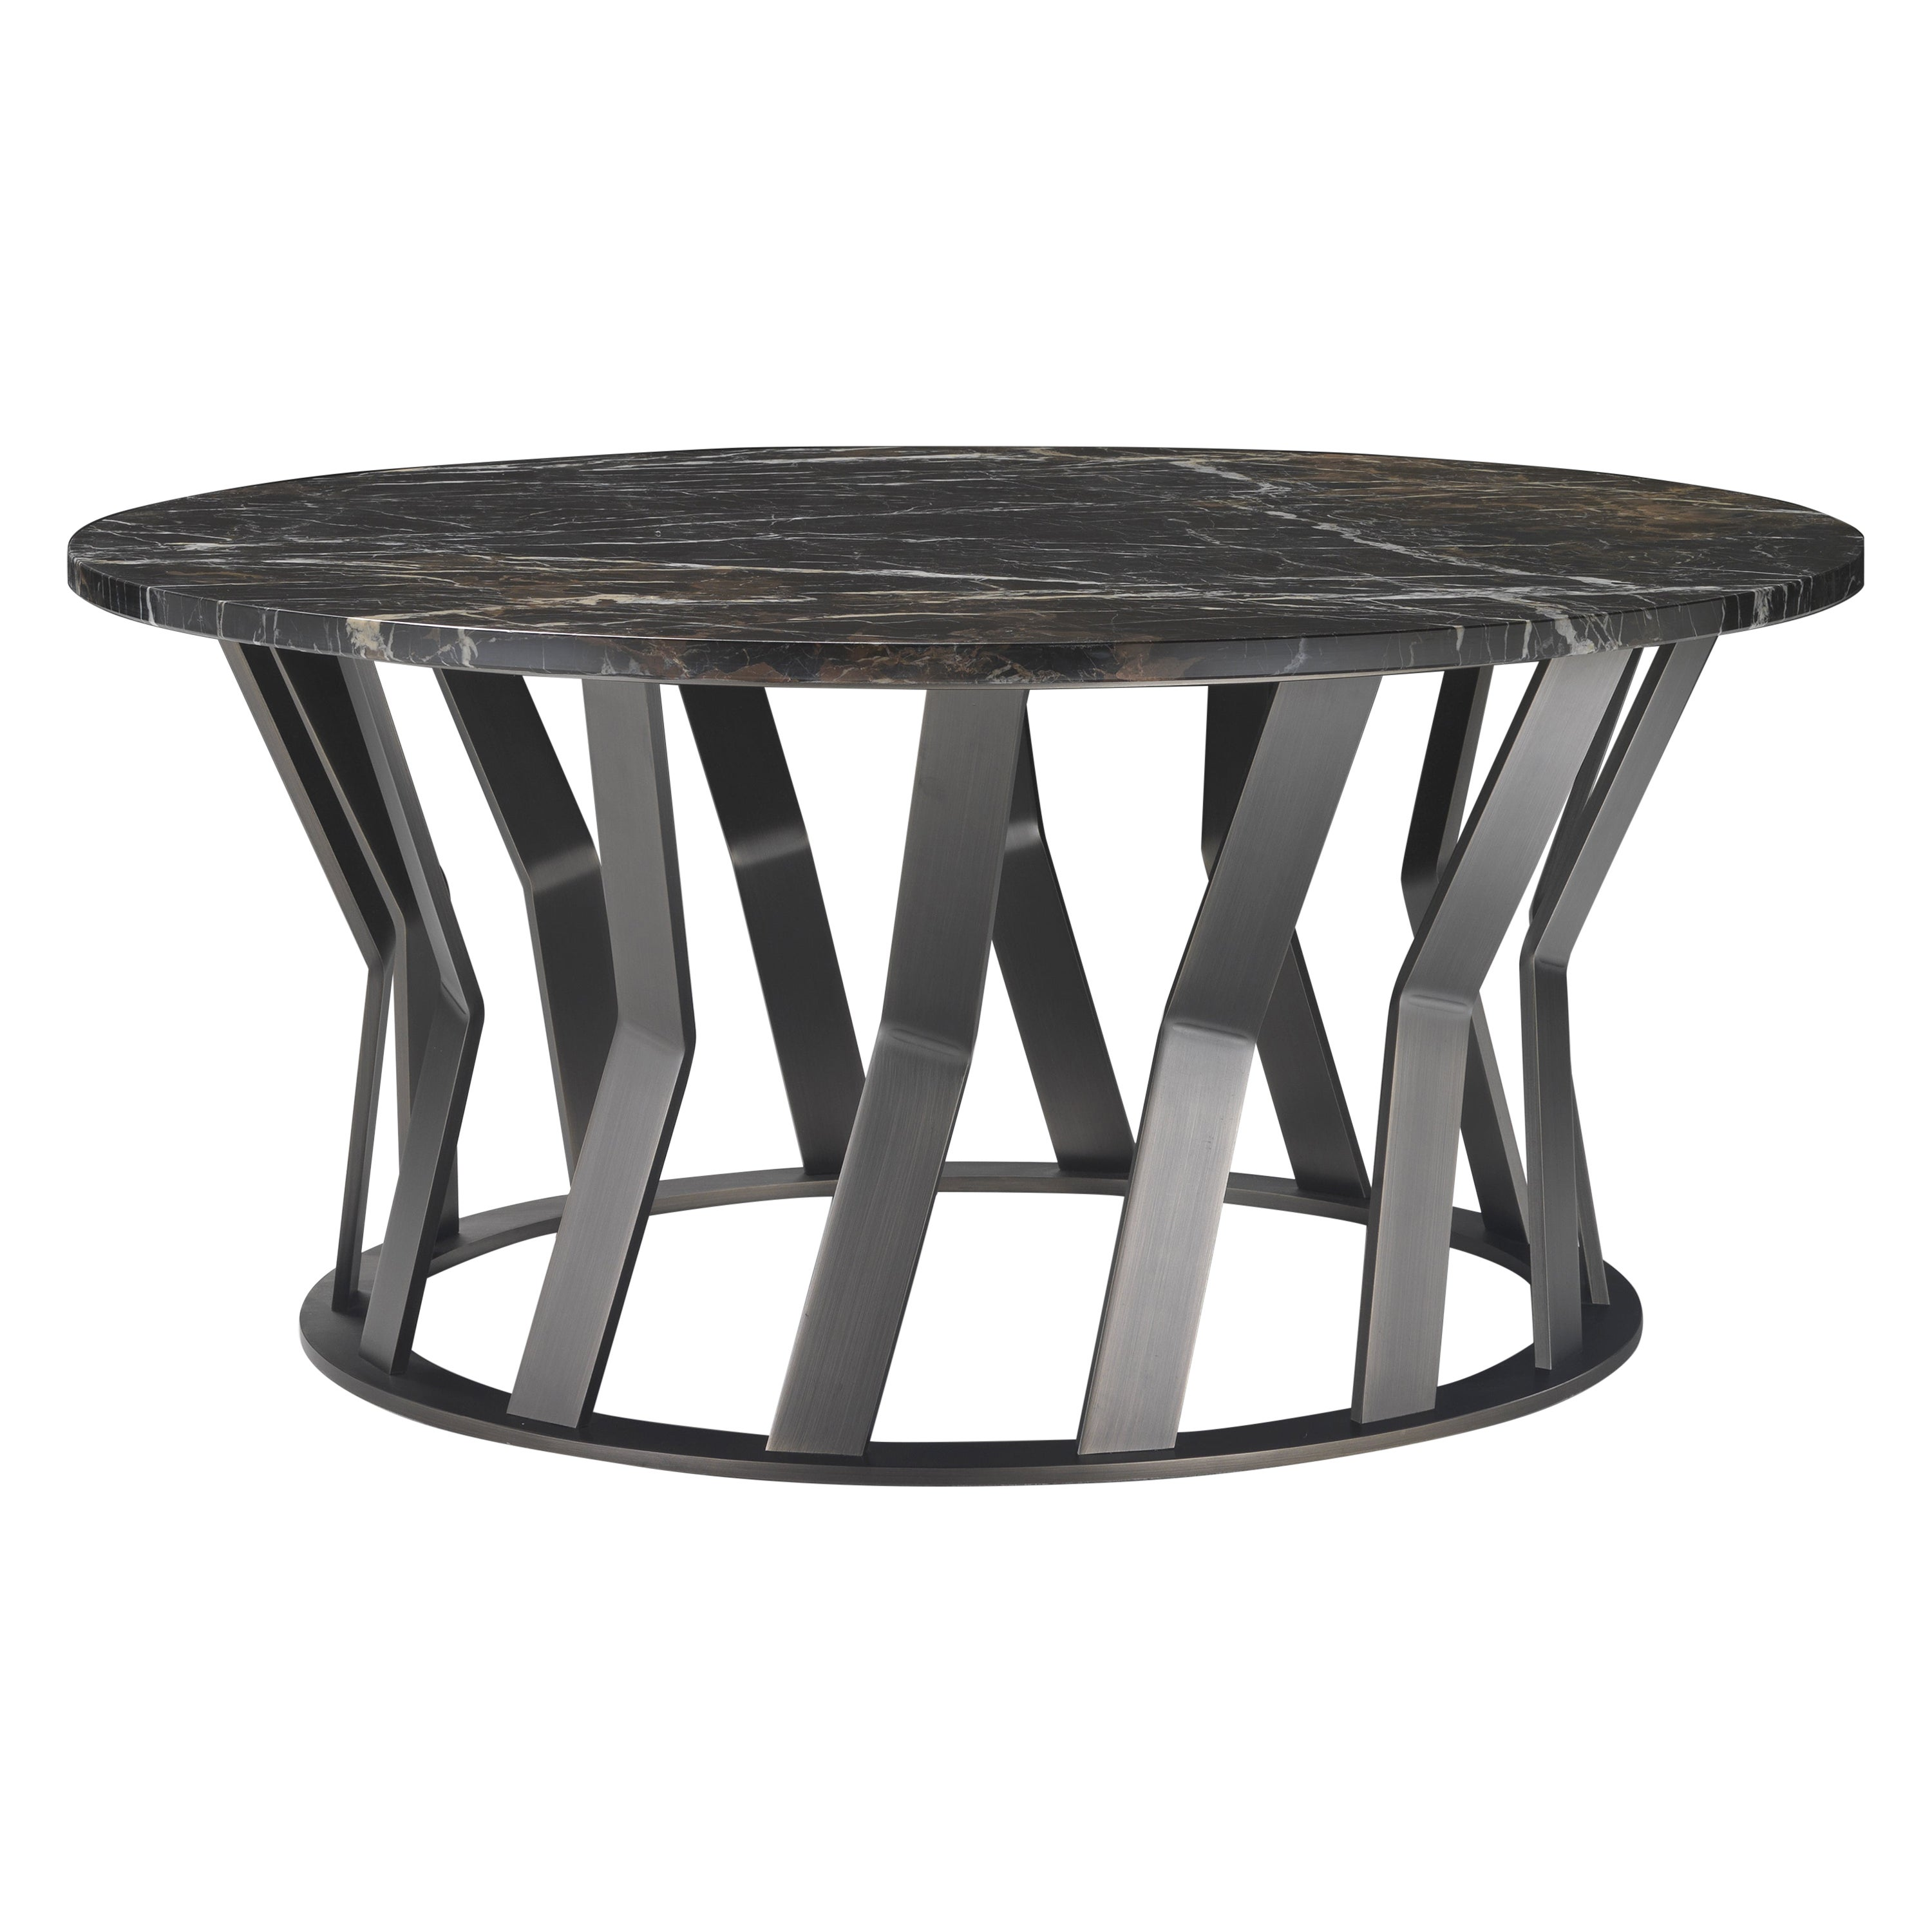 Ray Coffee Table with Black & Gold Marble Top and Bronze Metal Base by Zanaboni